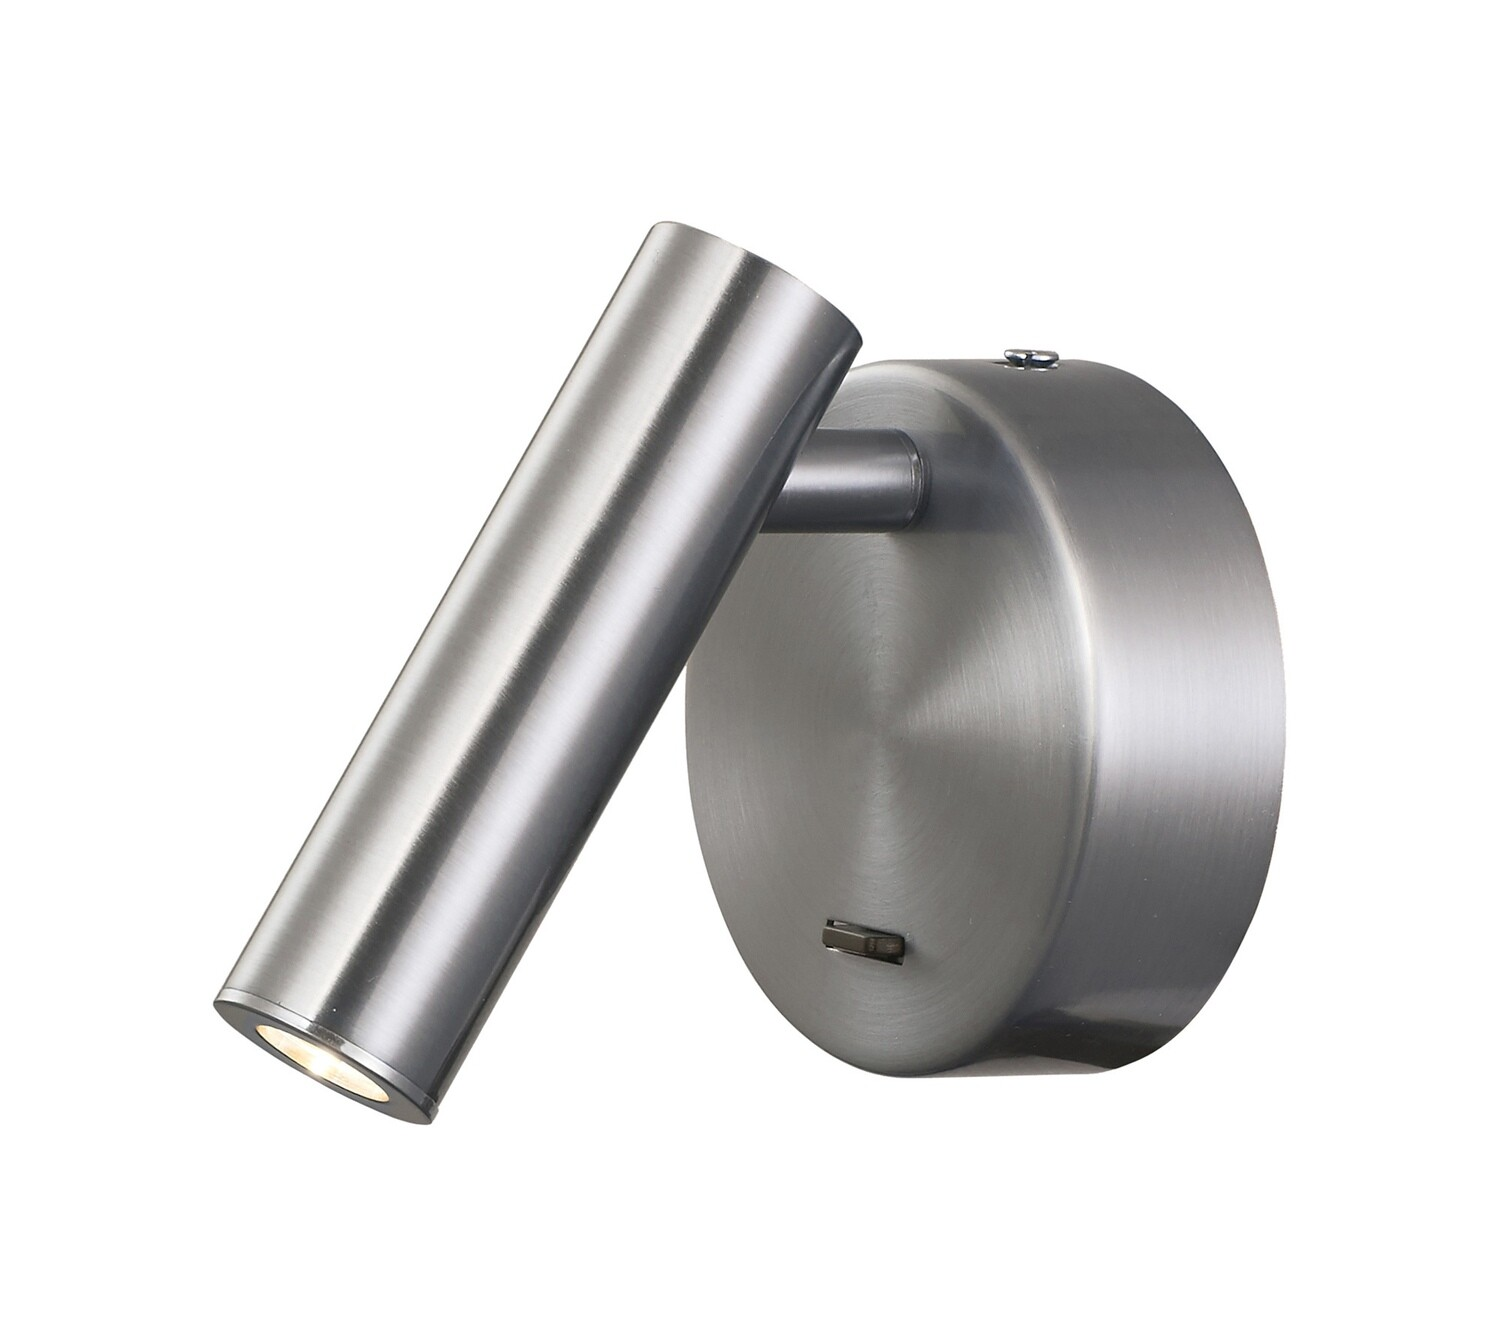 Prea Wall/Reading Light, 3W LED, 3000K, 210lm, Switched, Satin Nickel